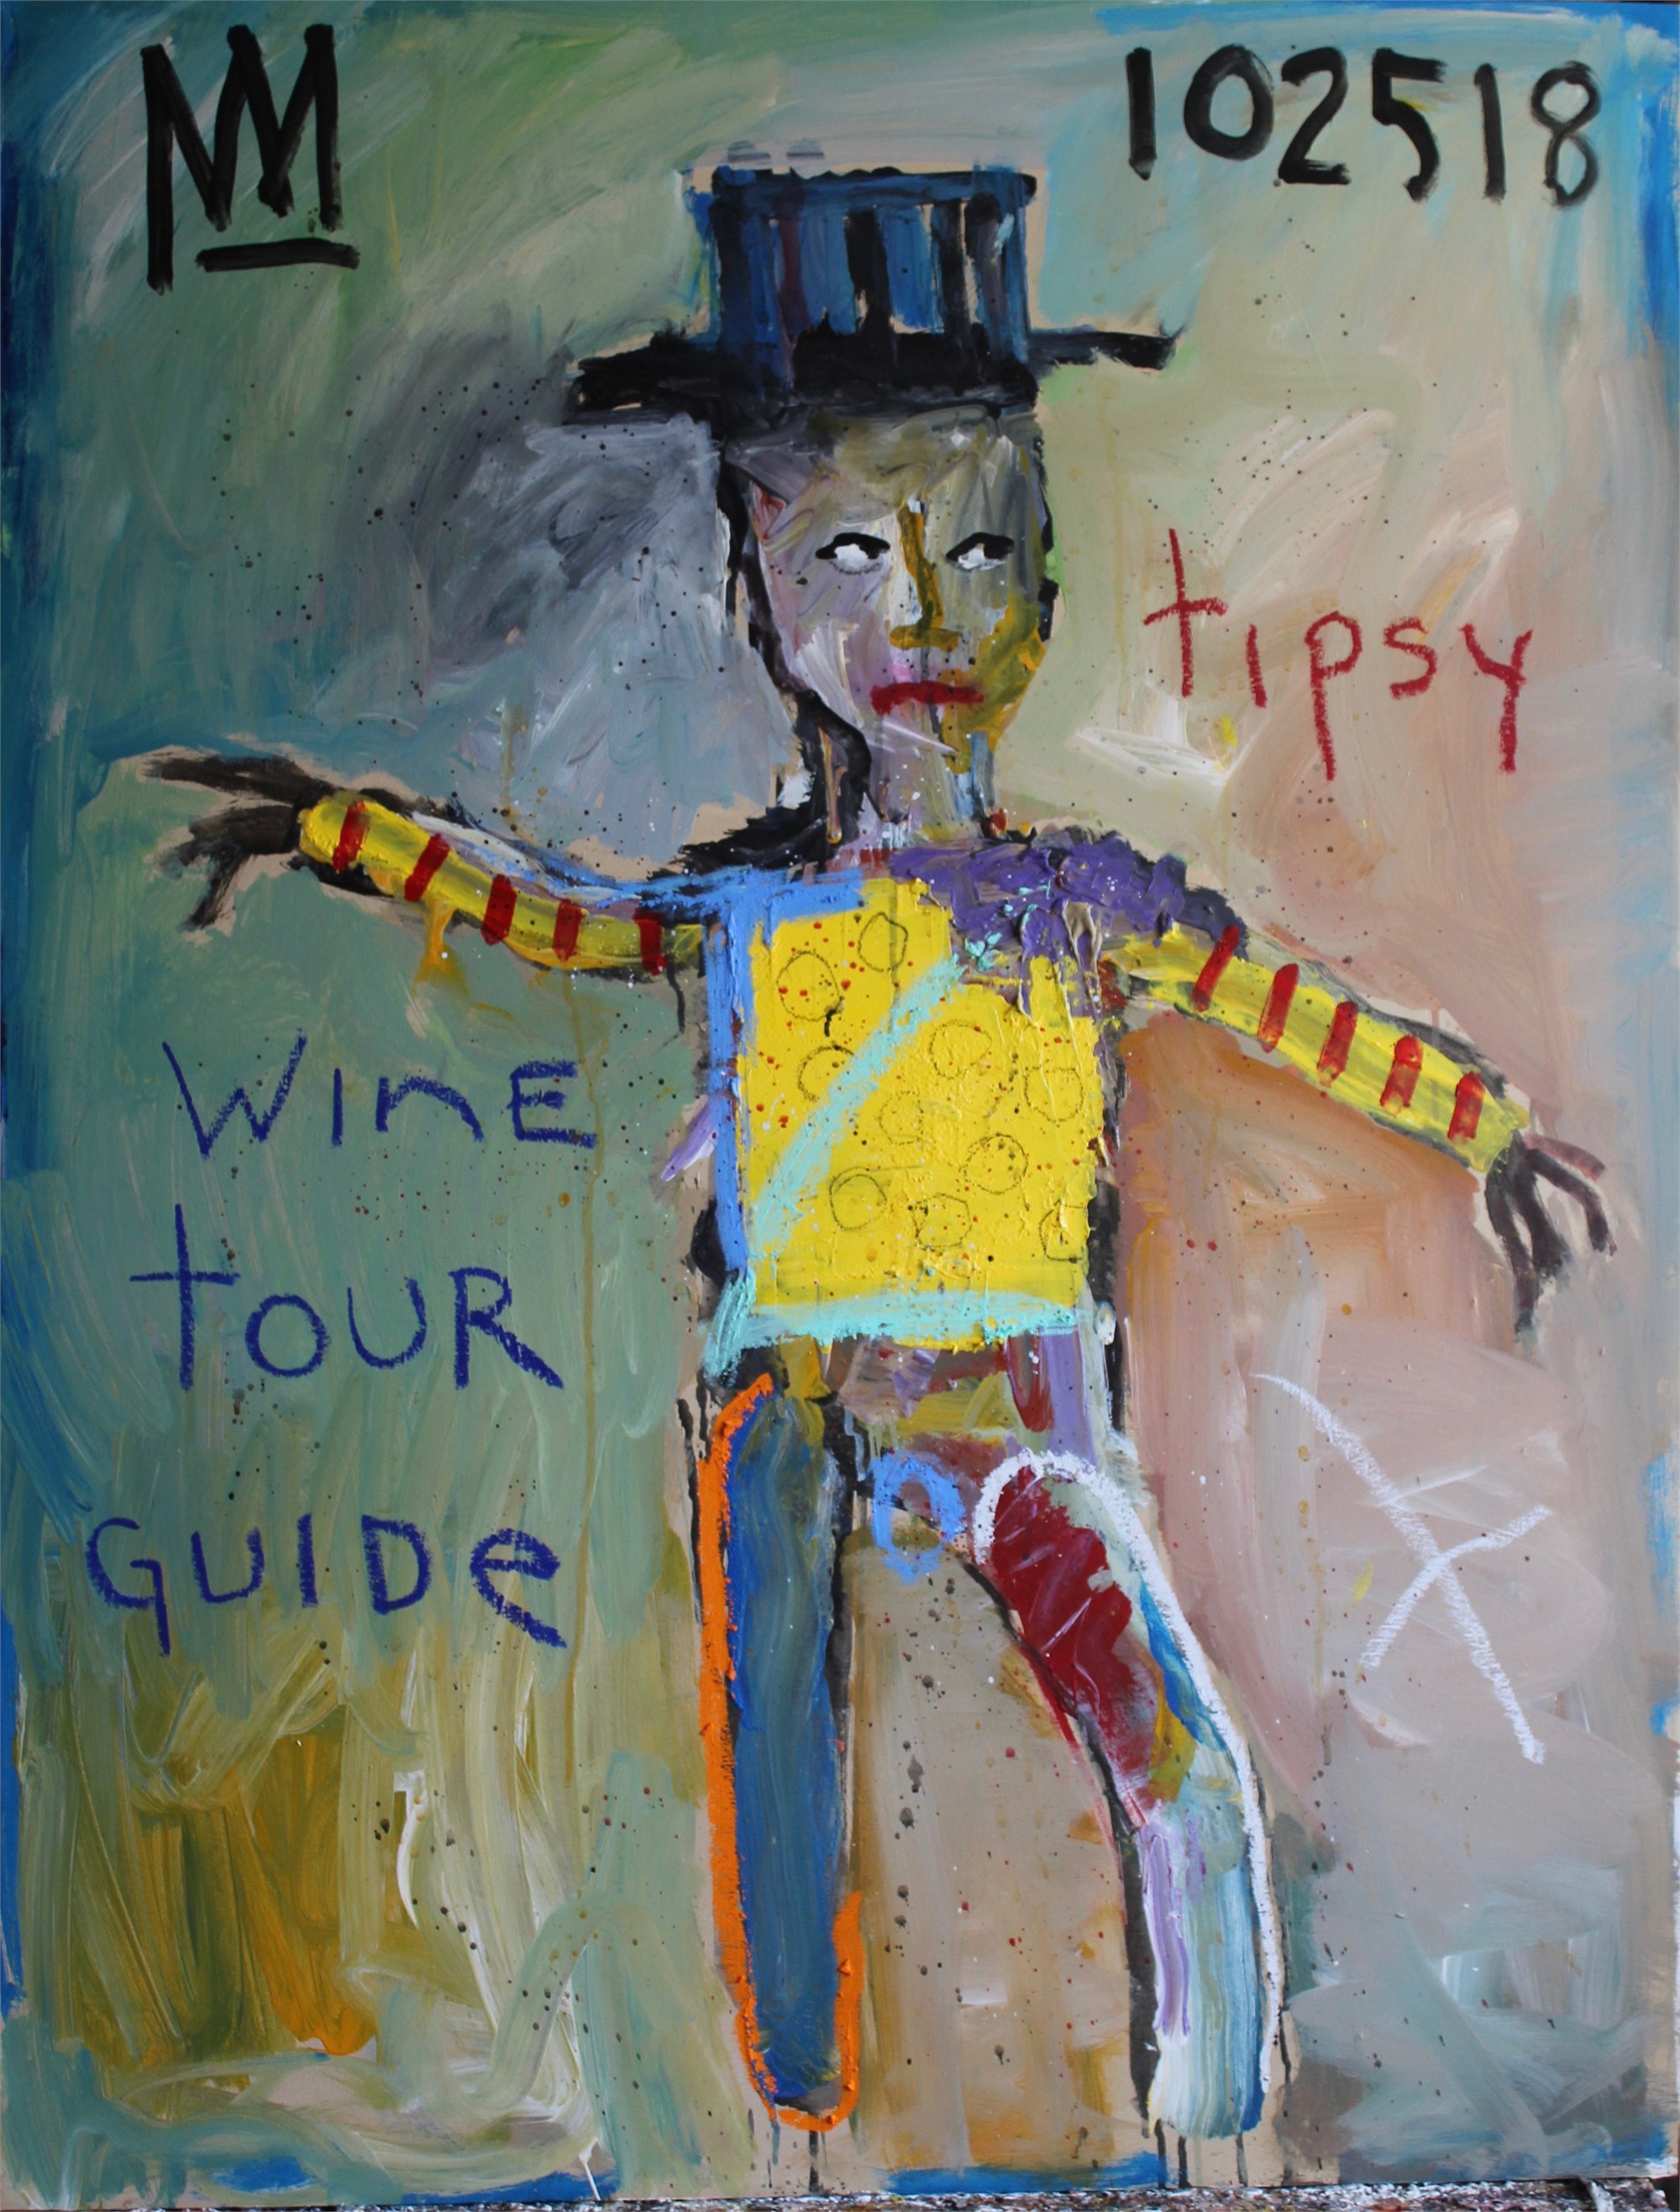 Tipsy Wine Tour Guide by Michael Snodgrass